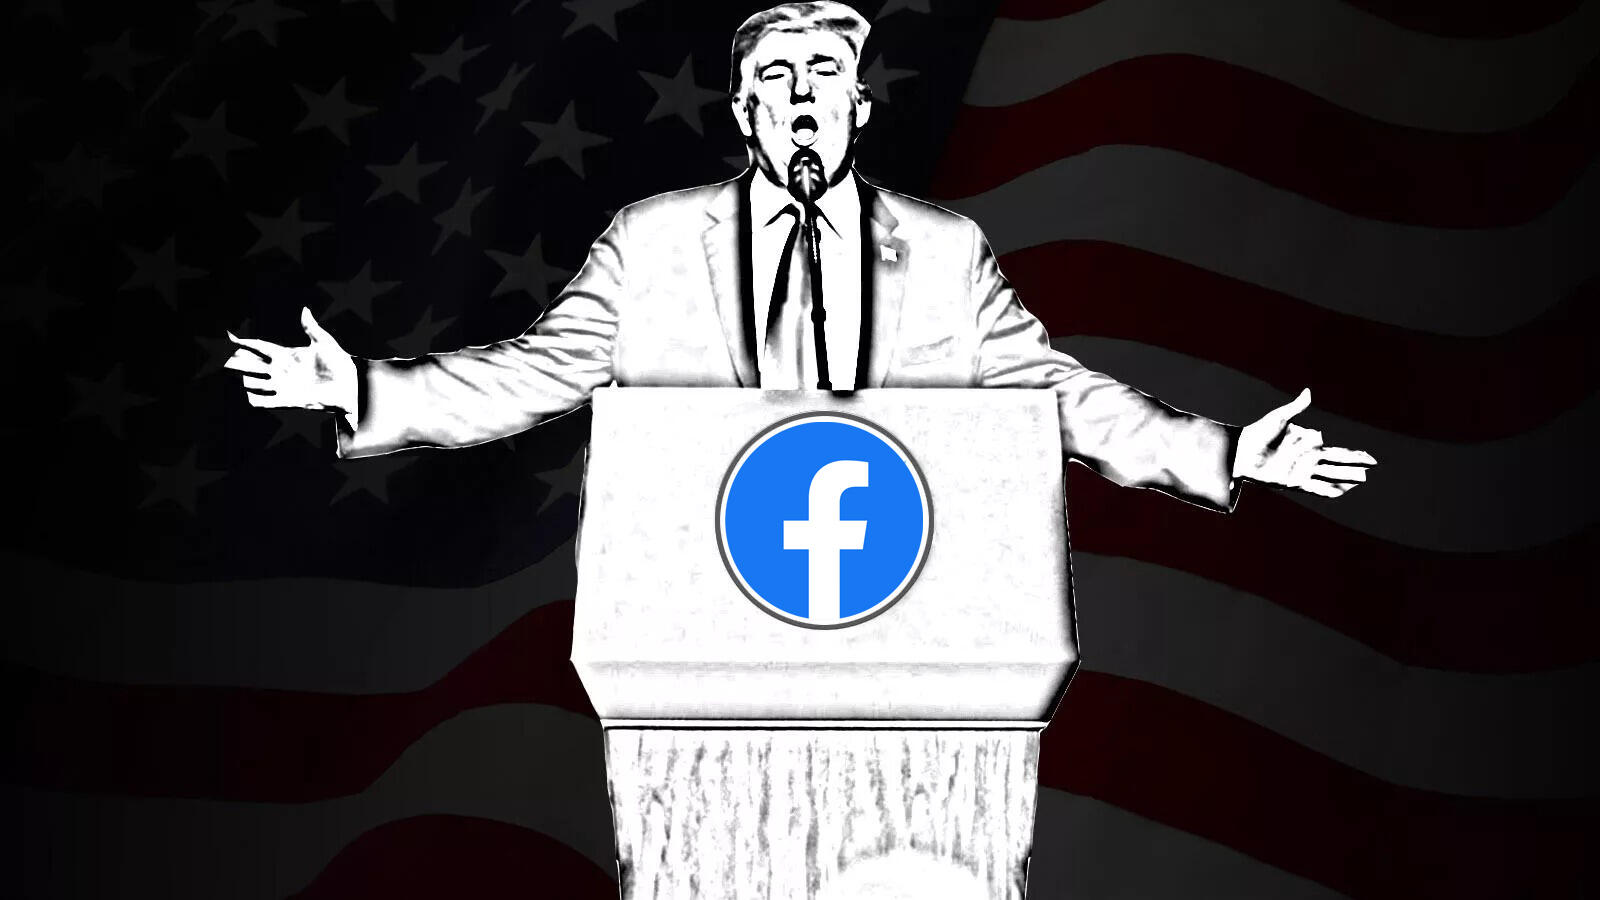 Facebook Oversight Board makes a decision on Donald Trump